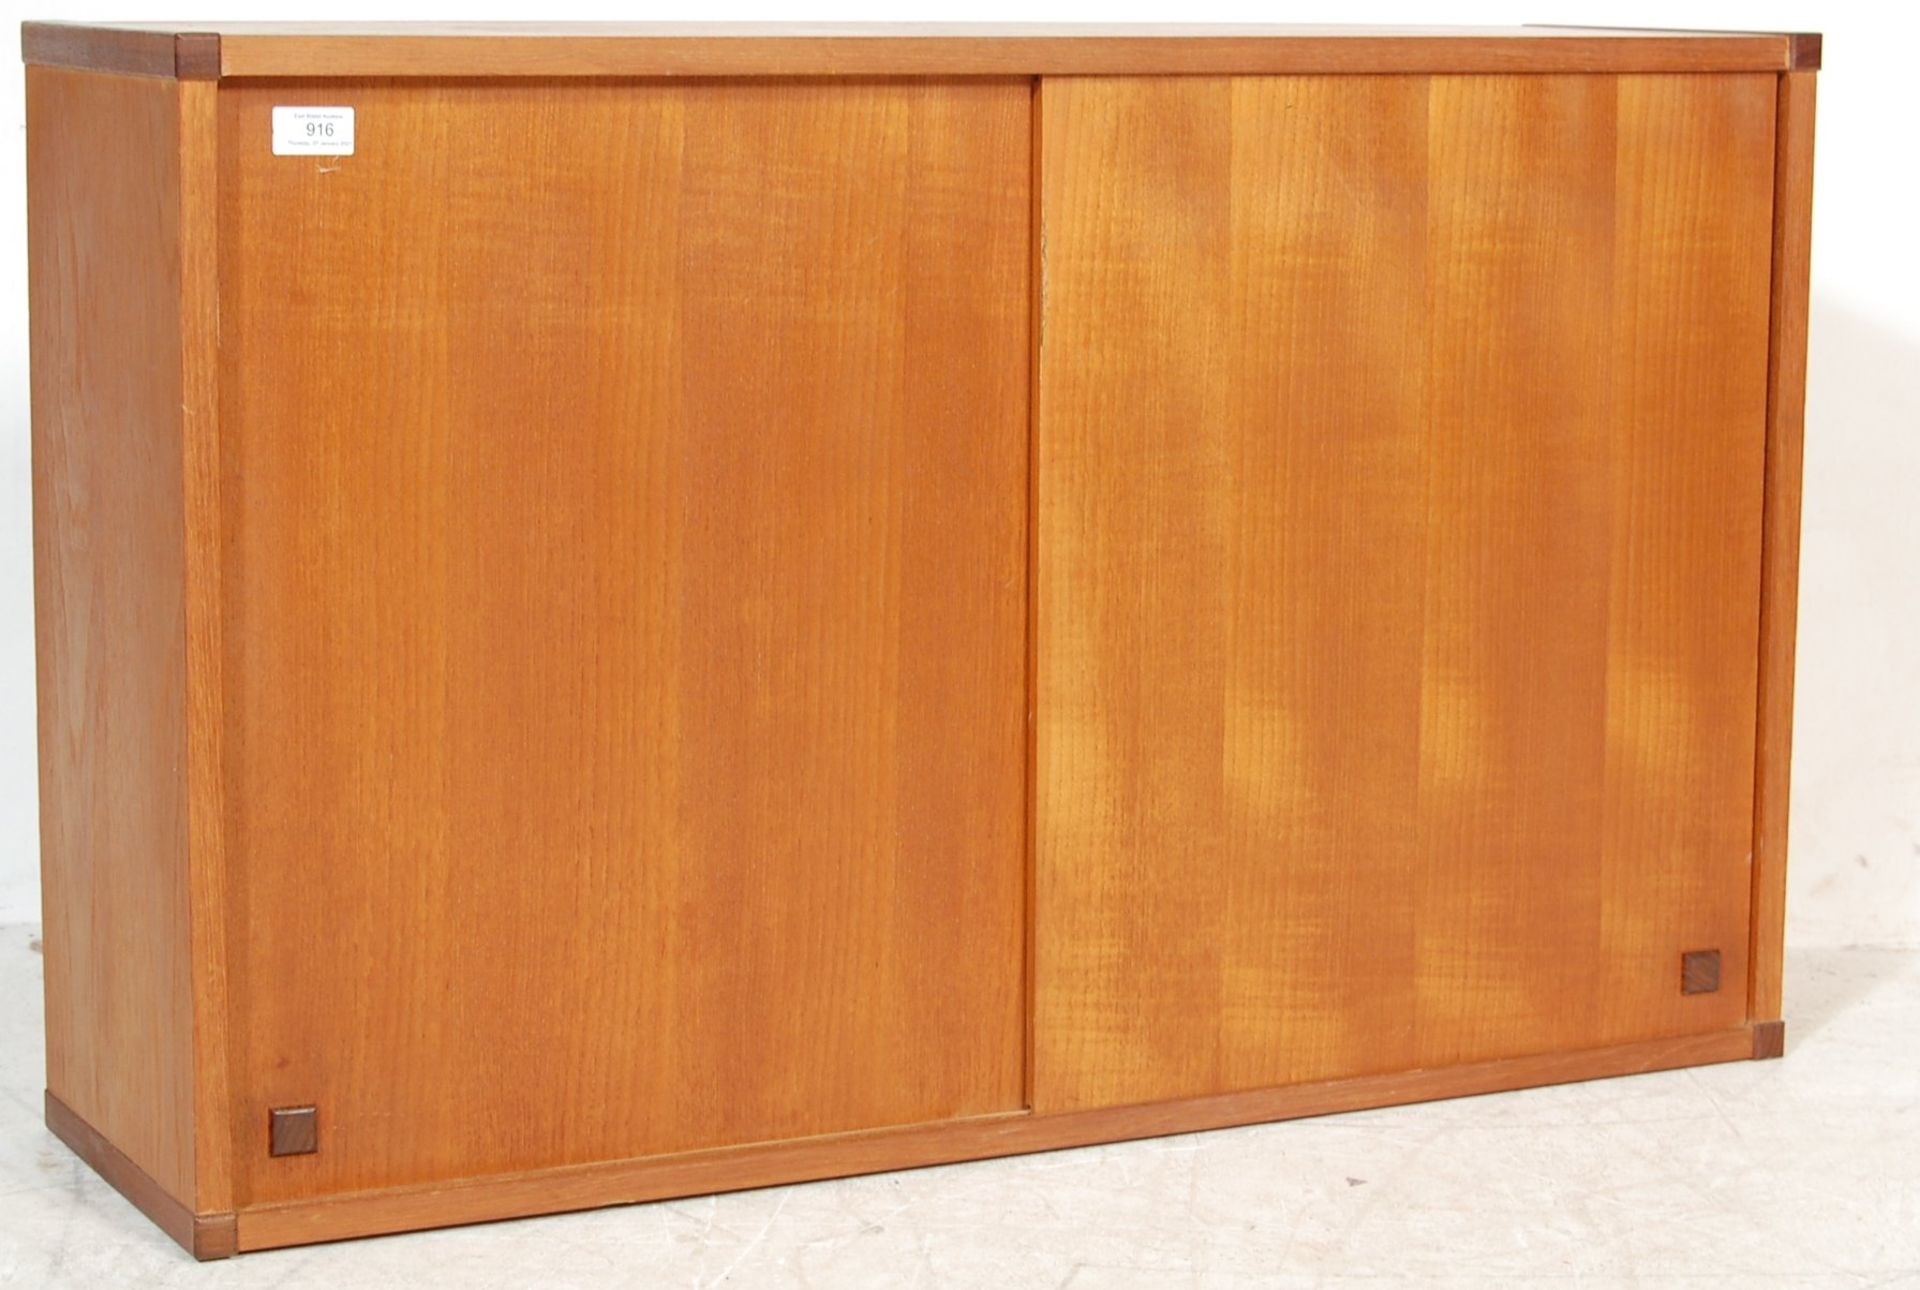 MID CENTURY WALL MOUNTED PS SYSTEM TYPE TEAK CABINET